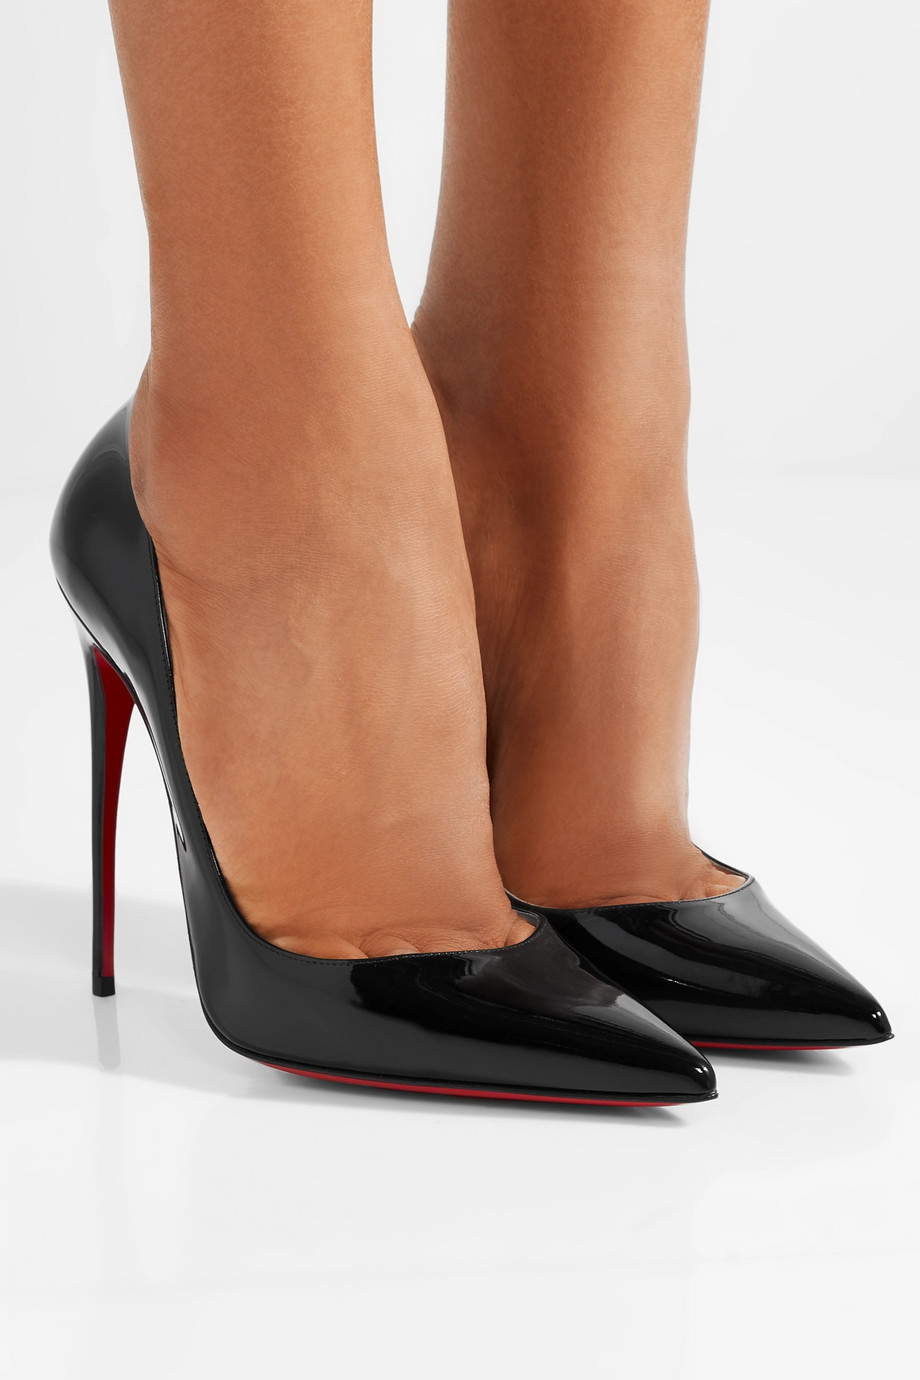 Christian Louboutin So Kate 120 patent-leather pumps